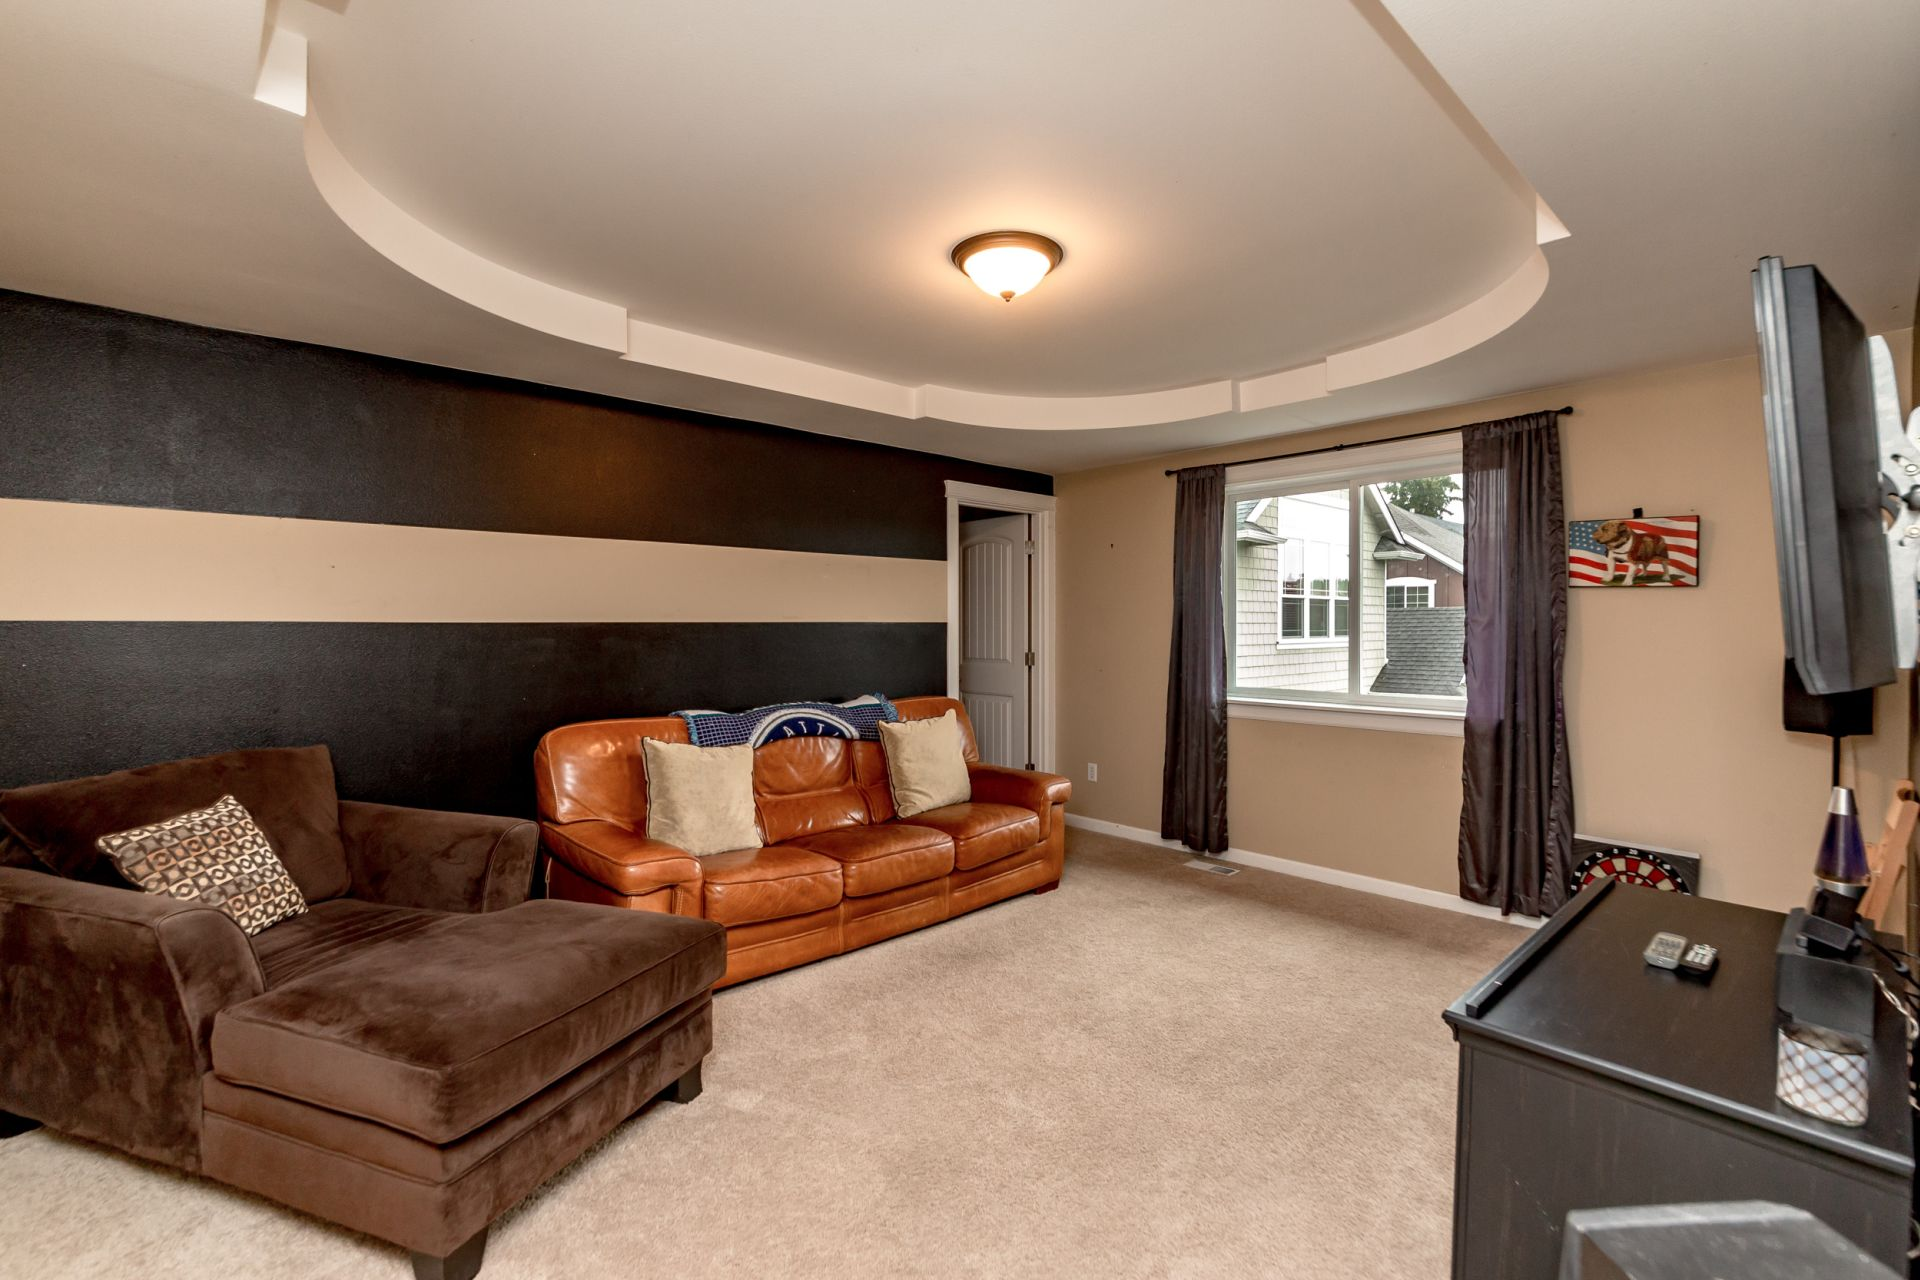 5 Ideas to Increase the Value of your basement